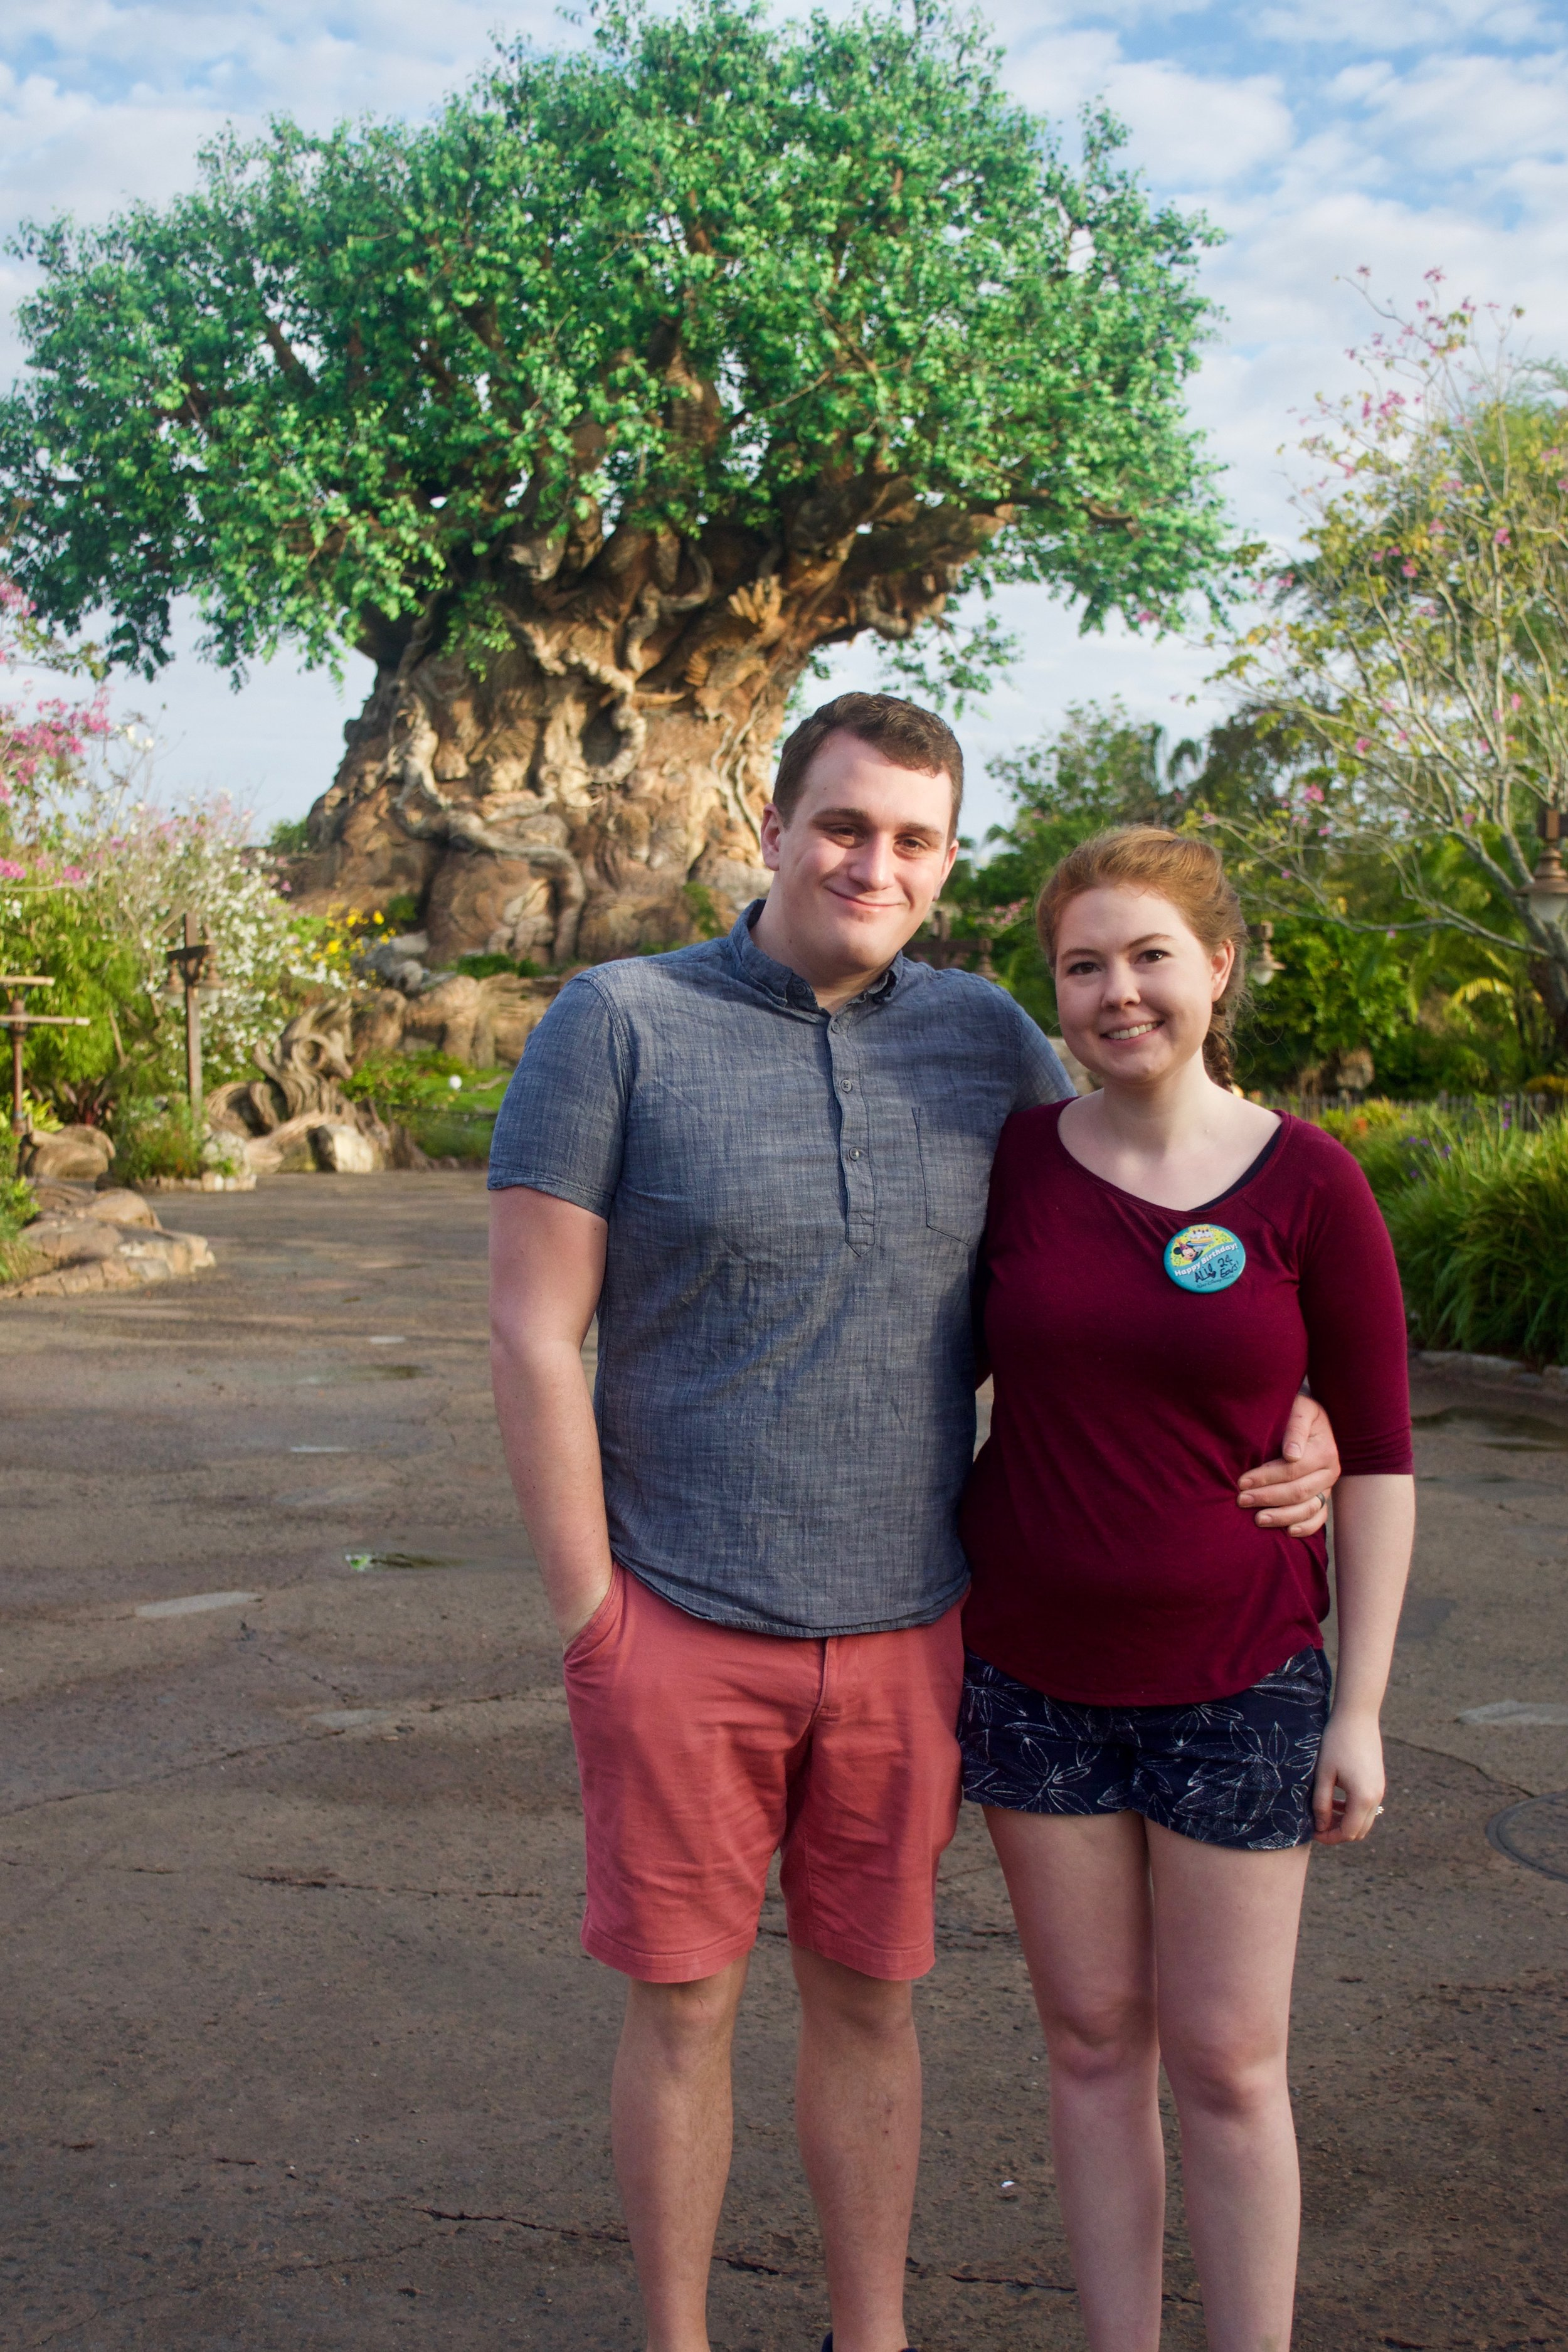 Couple in front of Animal Kingdom's Tree of Life - How to Make the Most of Disney Theme Parks as an Adult